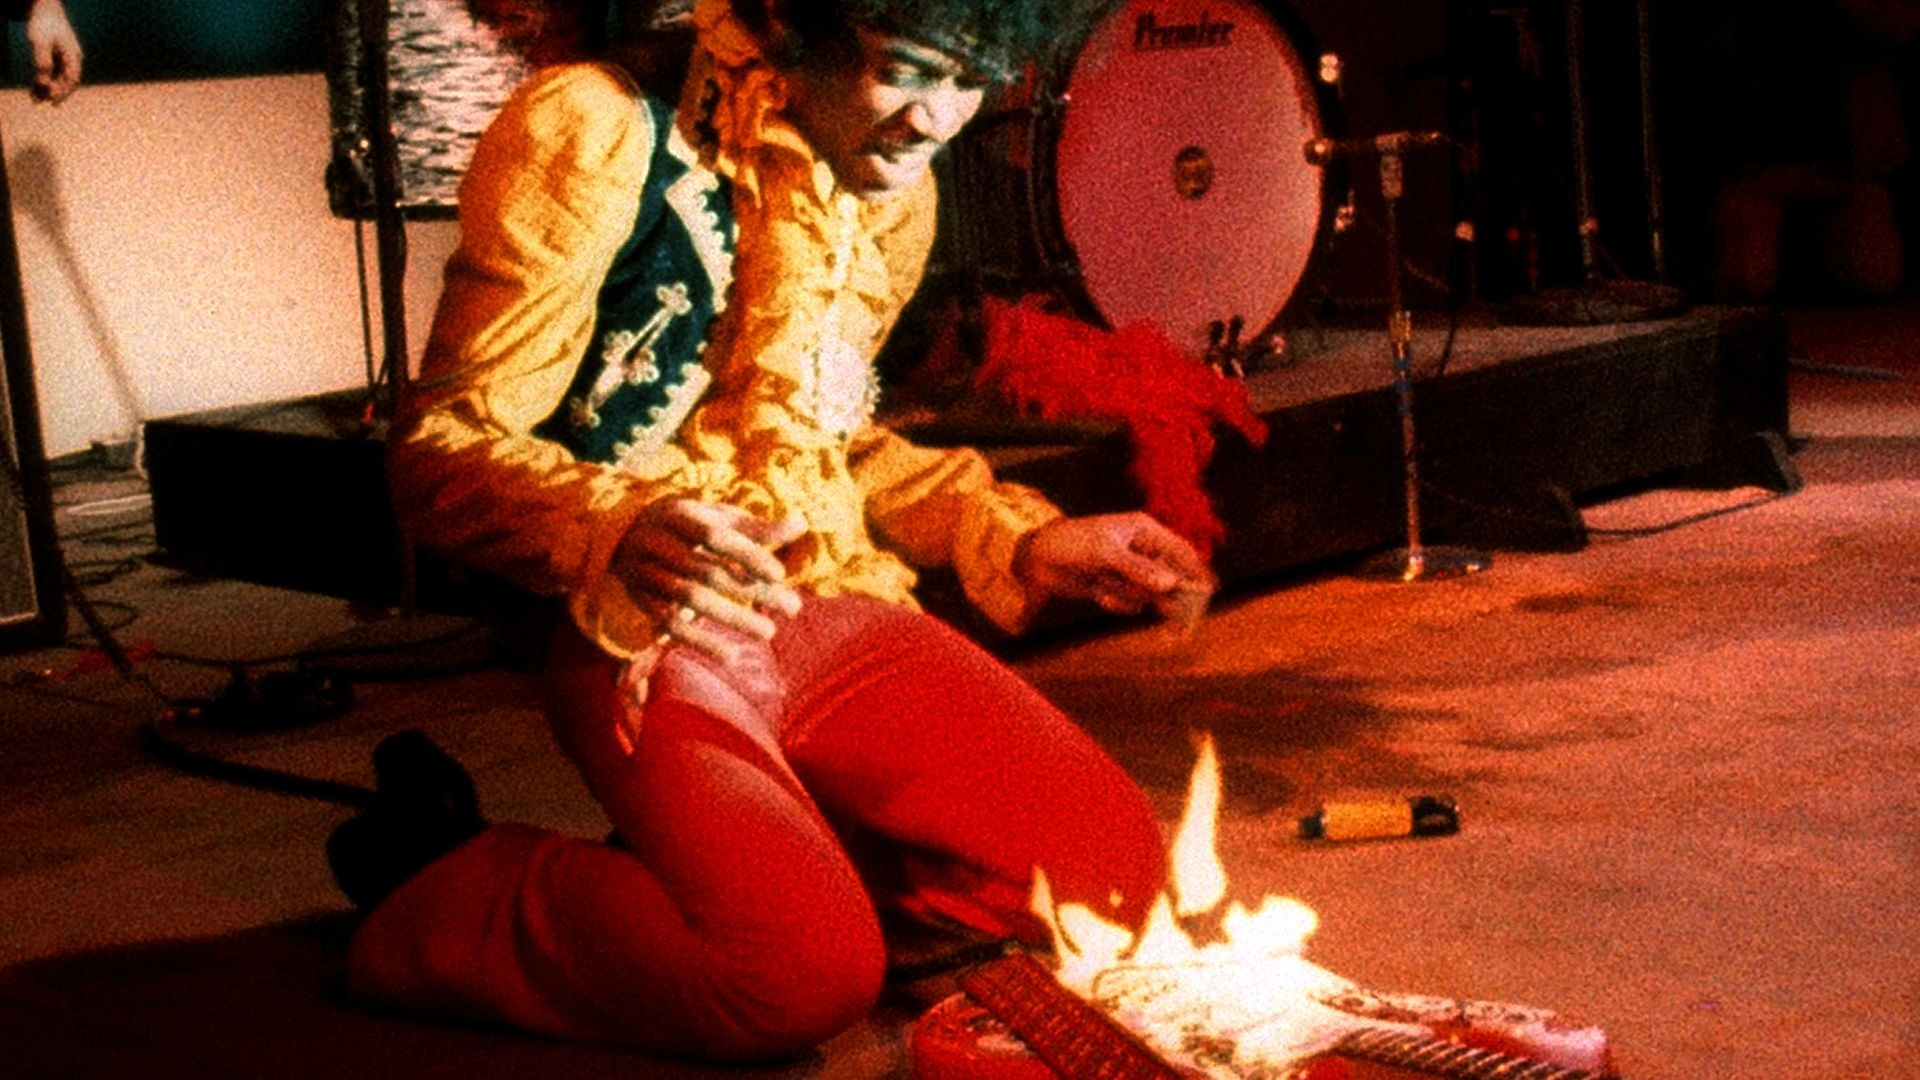 1920x1080 Jimi Hendrix setting his guitar on fire at the Monterey Pop Music Festival  in 1967 [] ...